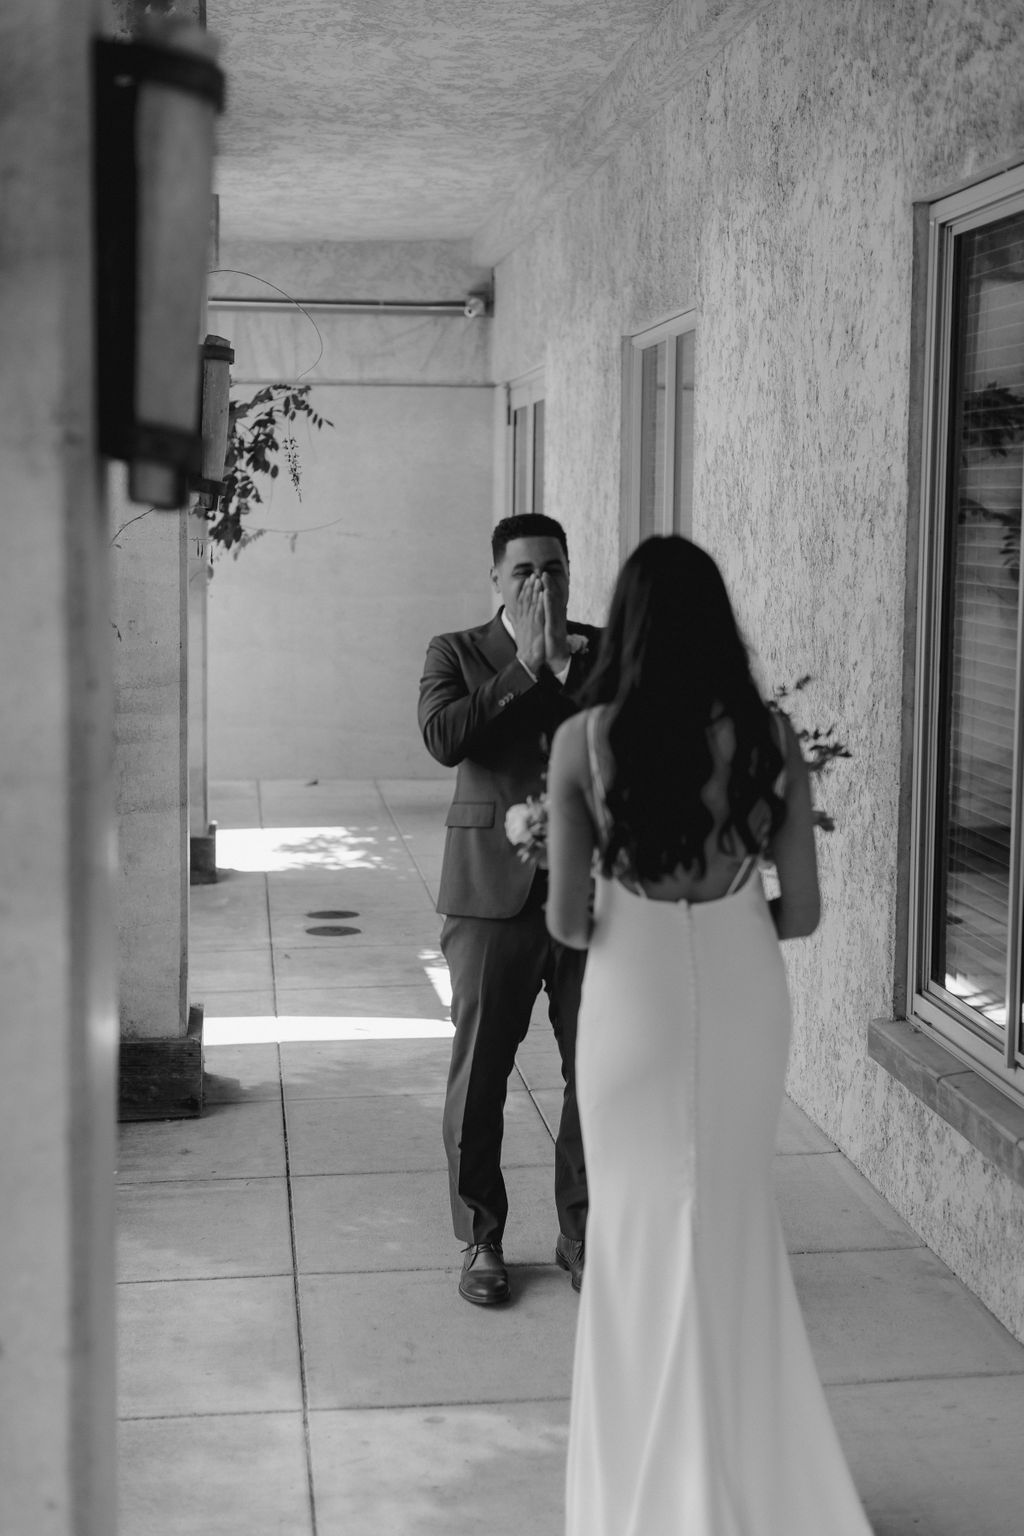 Wedding | Siulin & William photographed by Heart and Colour | LOVE FIND CO. Bridal Directory